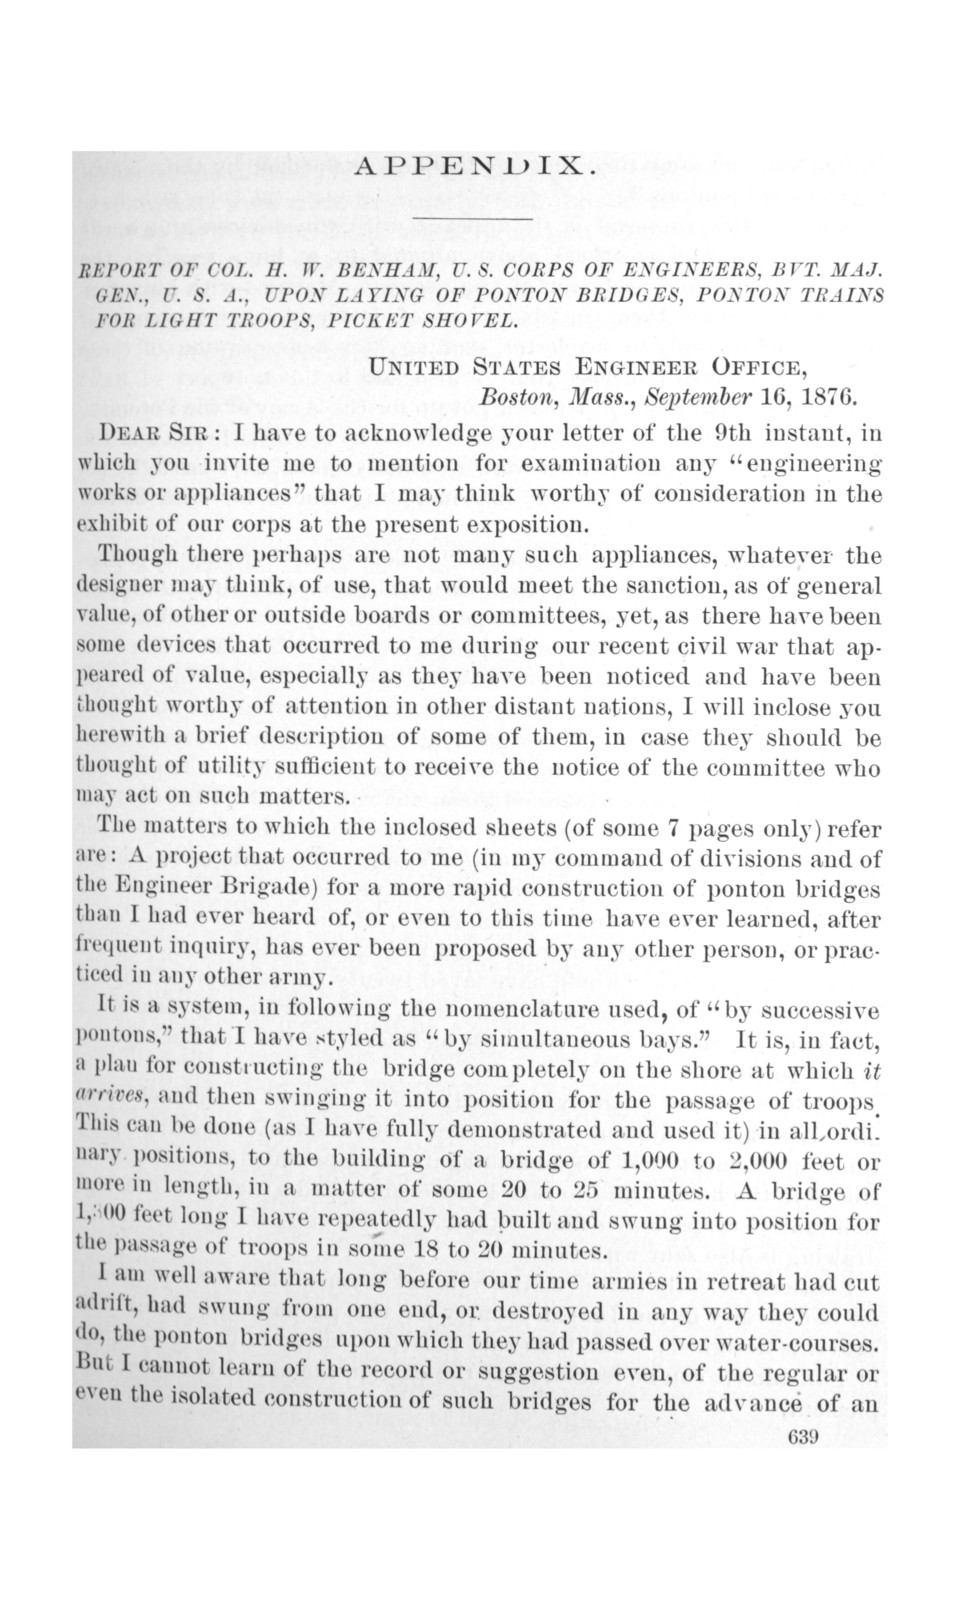 Report of the Board on behalf of the United States executive departments at the International exhibition held at Philadelphia, Pa., 1876, under acts of Congress of March 3, 1875, and May 1, 1876.